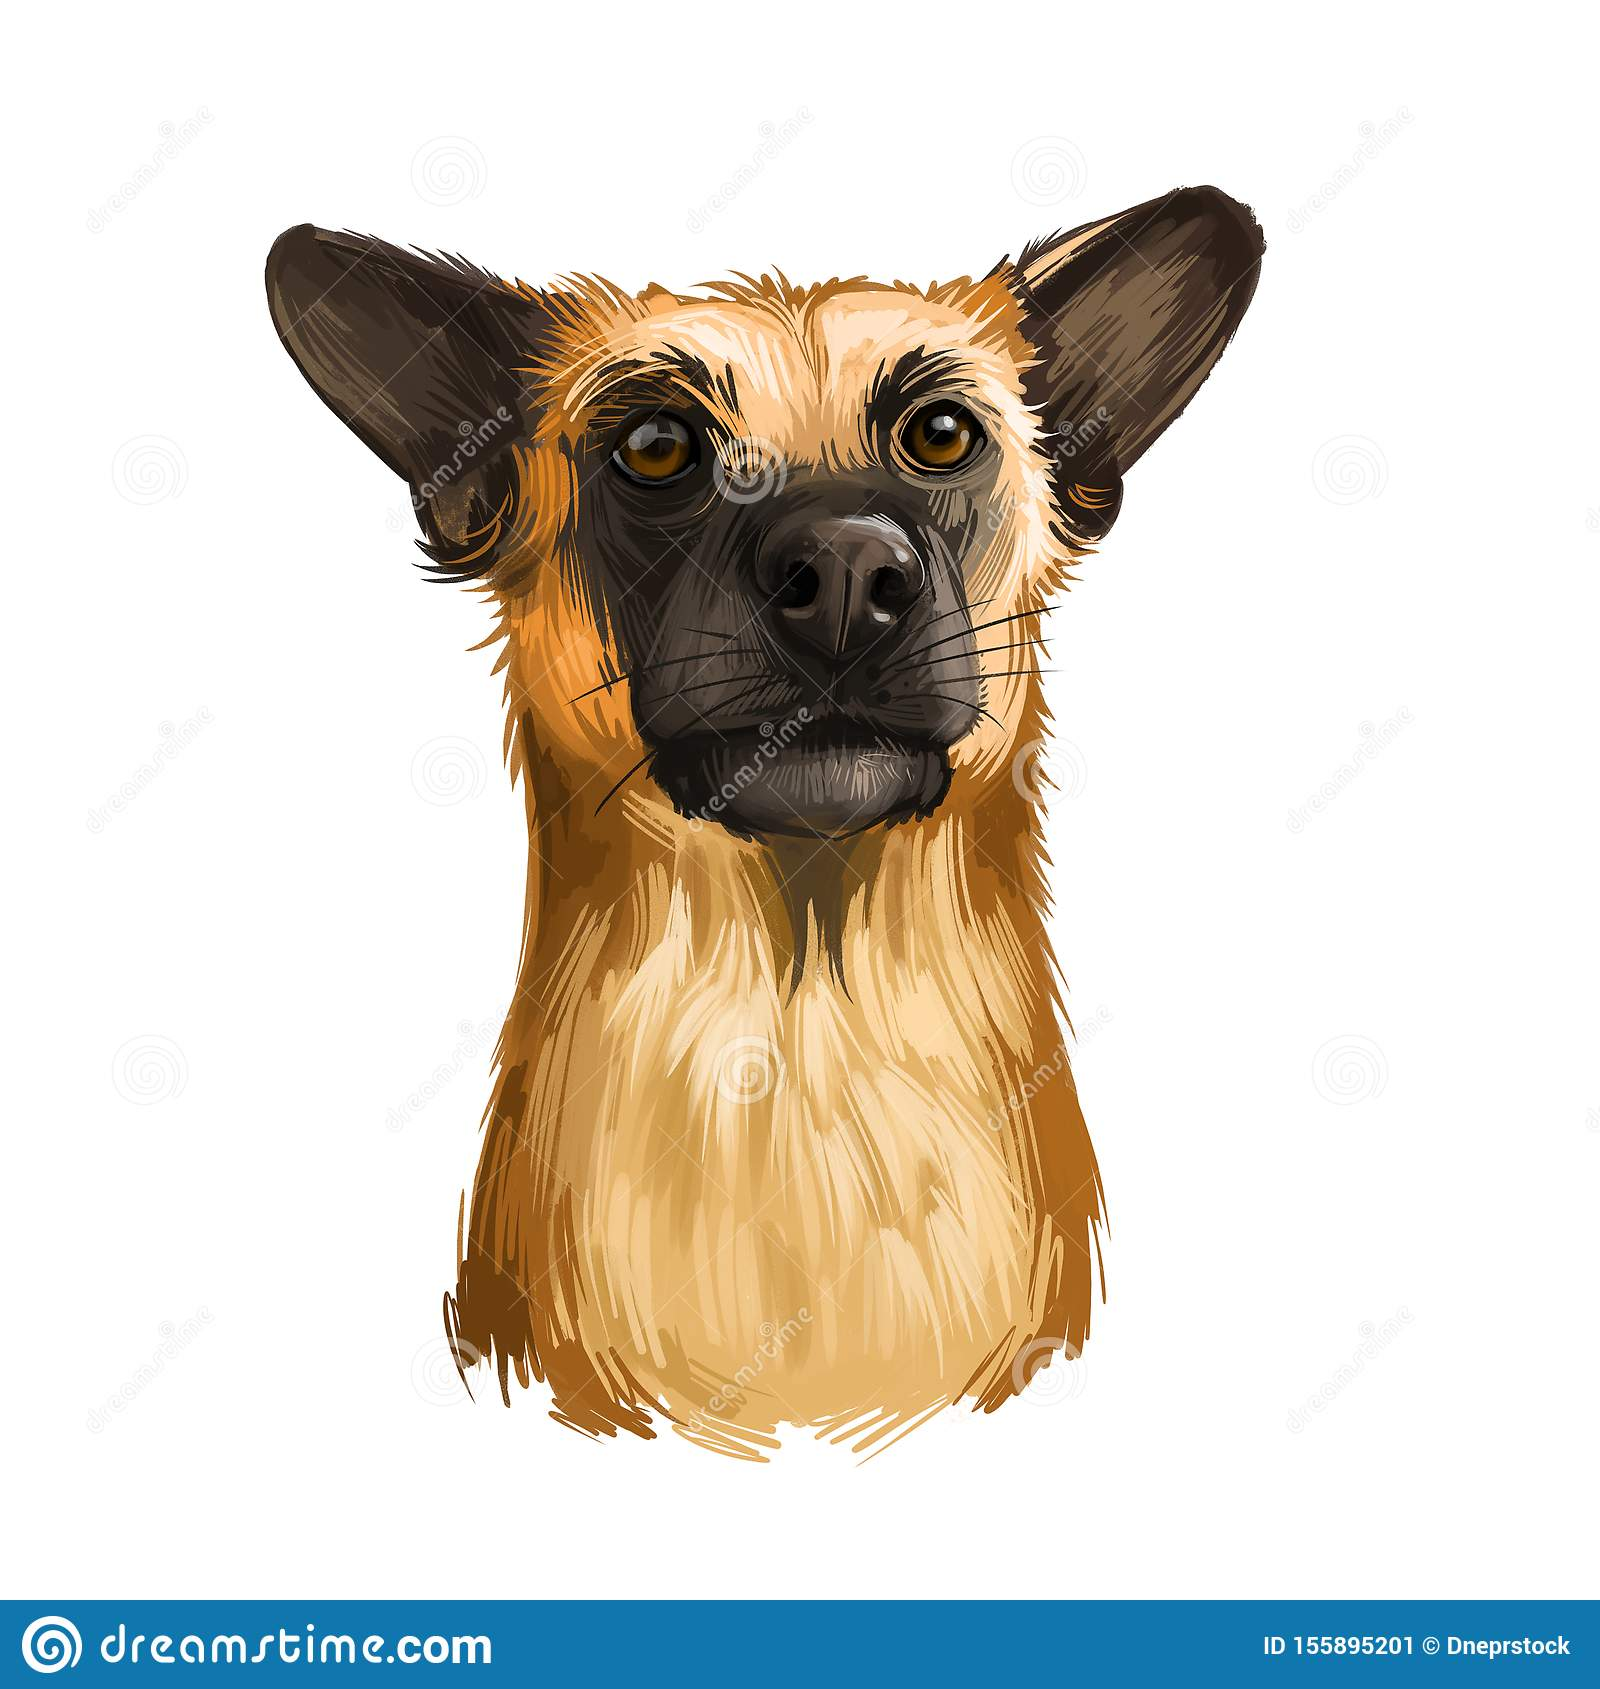 Chinook dog breed isolated on white background digital art illustration. Cute pet hand drawn portrait. Graphic clipart design real